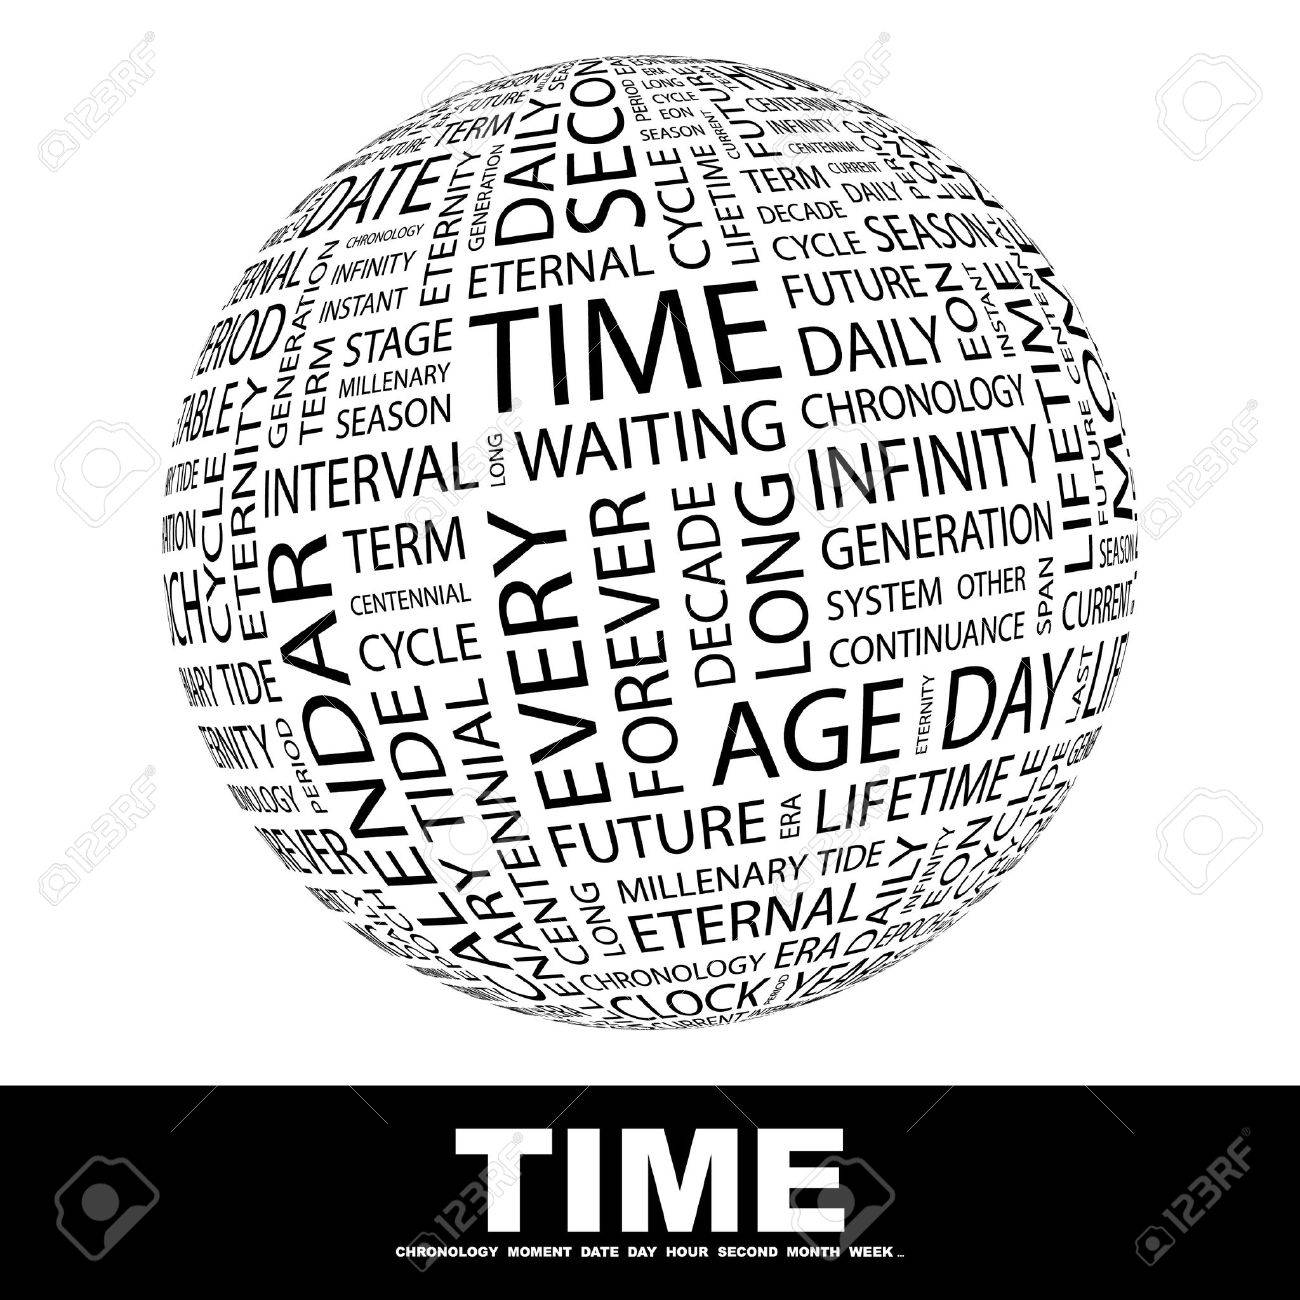 TIME. Globe with different association terms. Wordcloud vector illustration. Stock Vector - 9129241